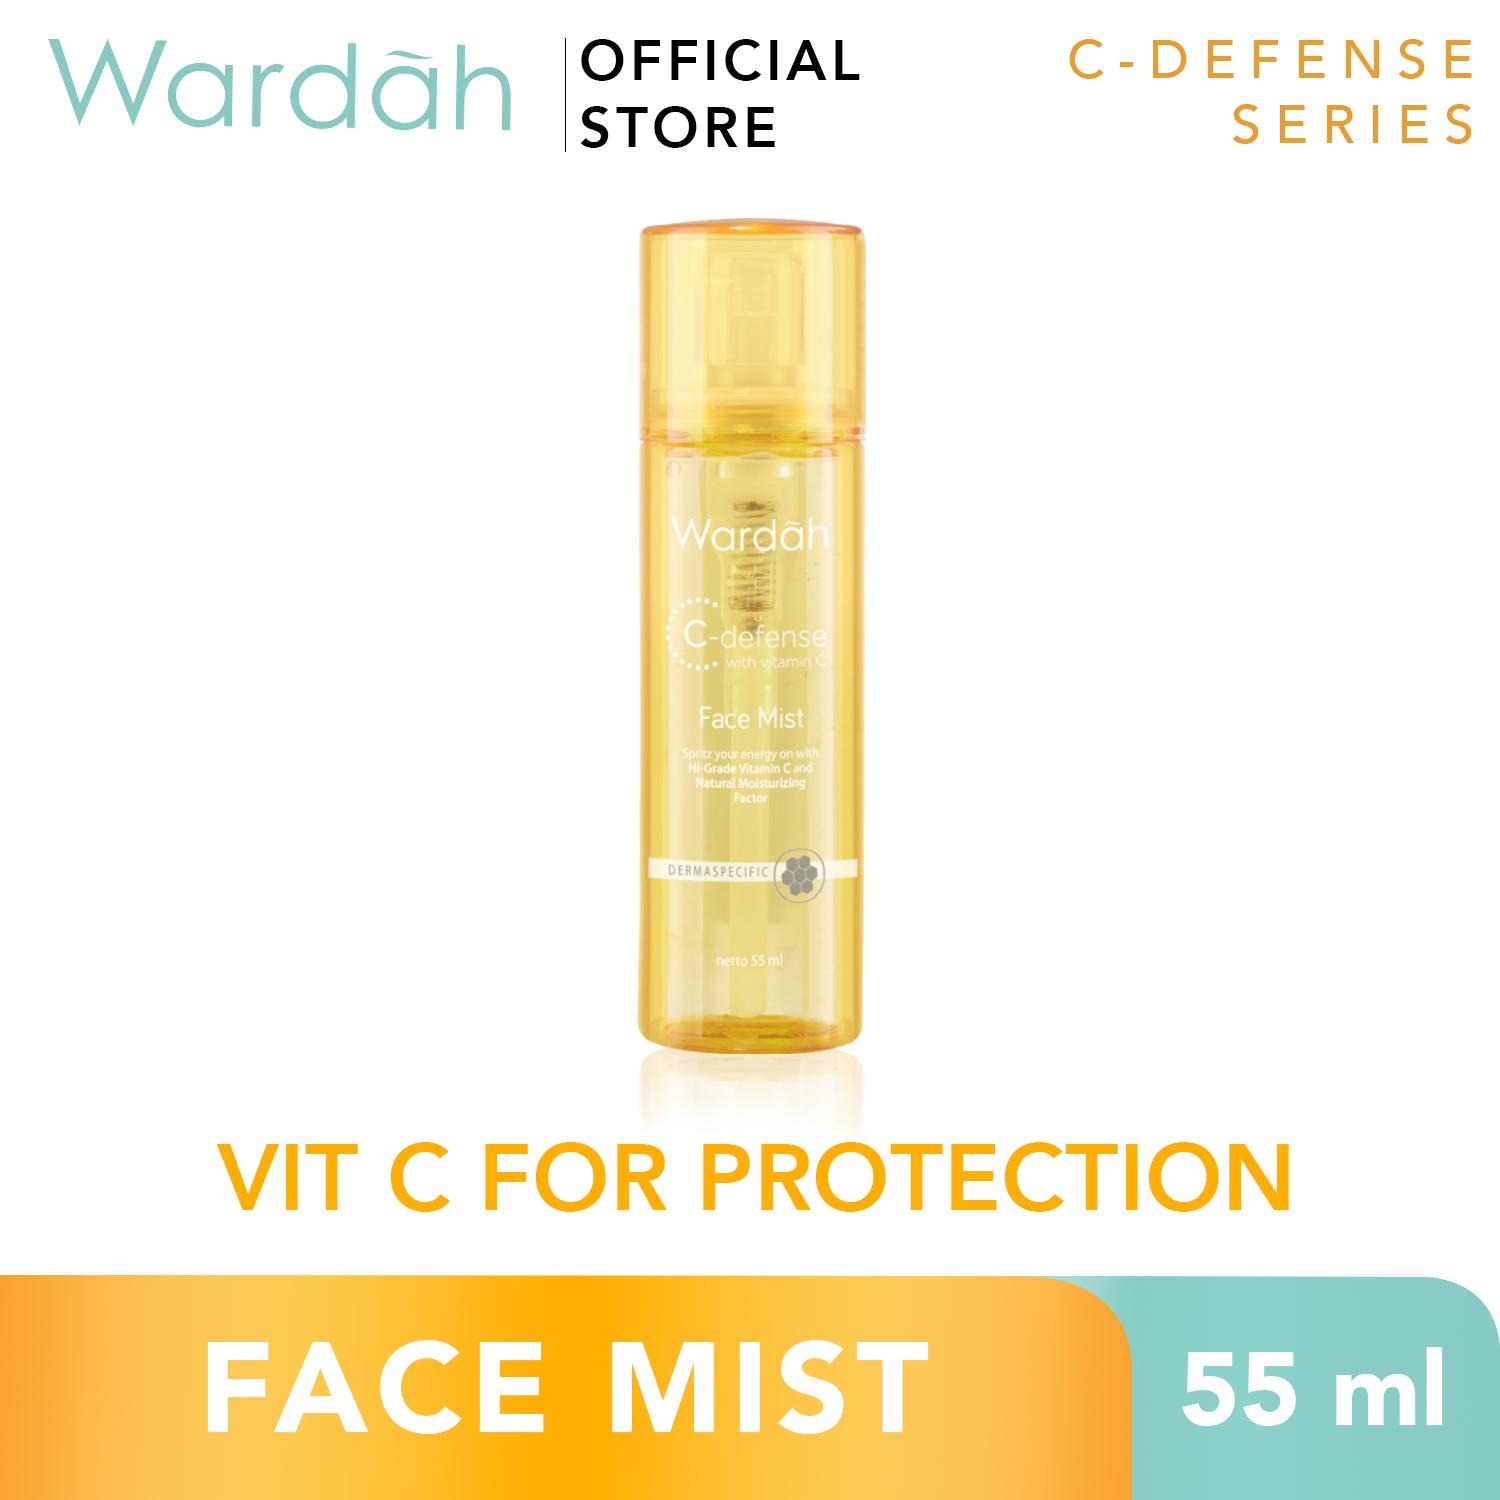 Wardah C-Defense Face Mist - Spray Wajah - Skincare